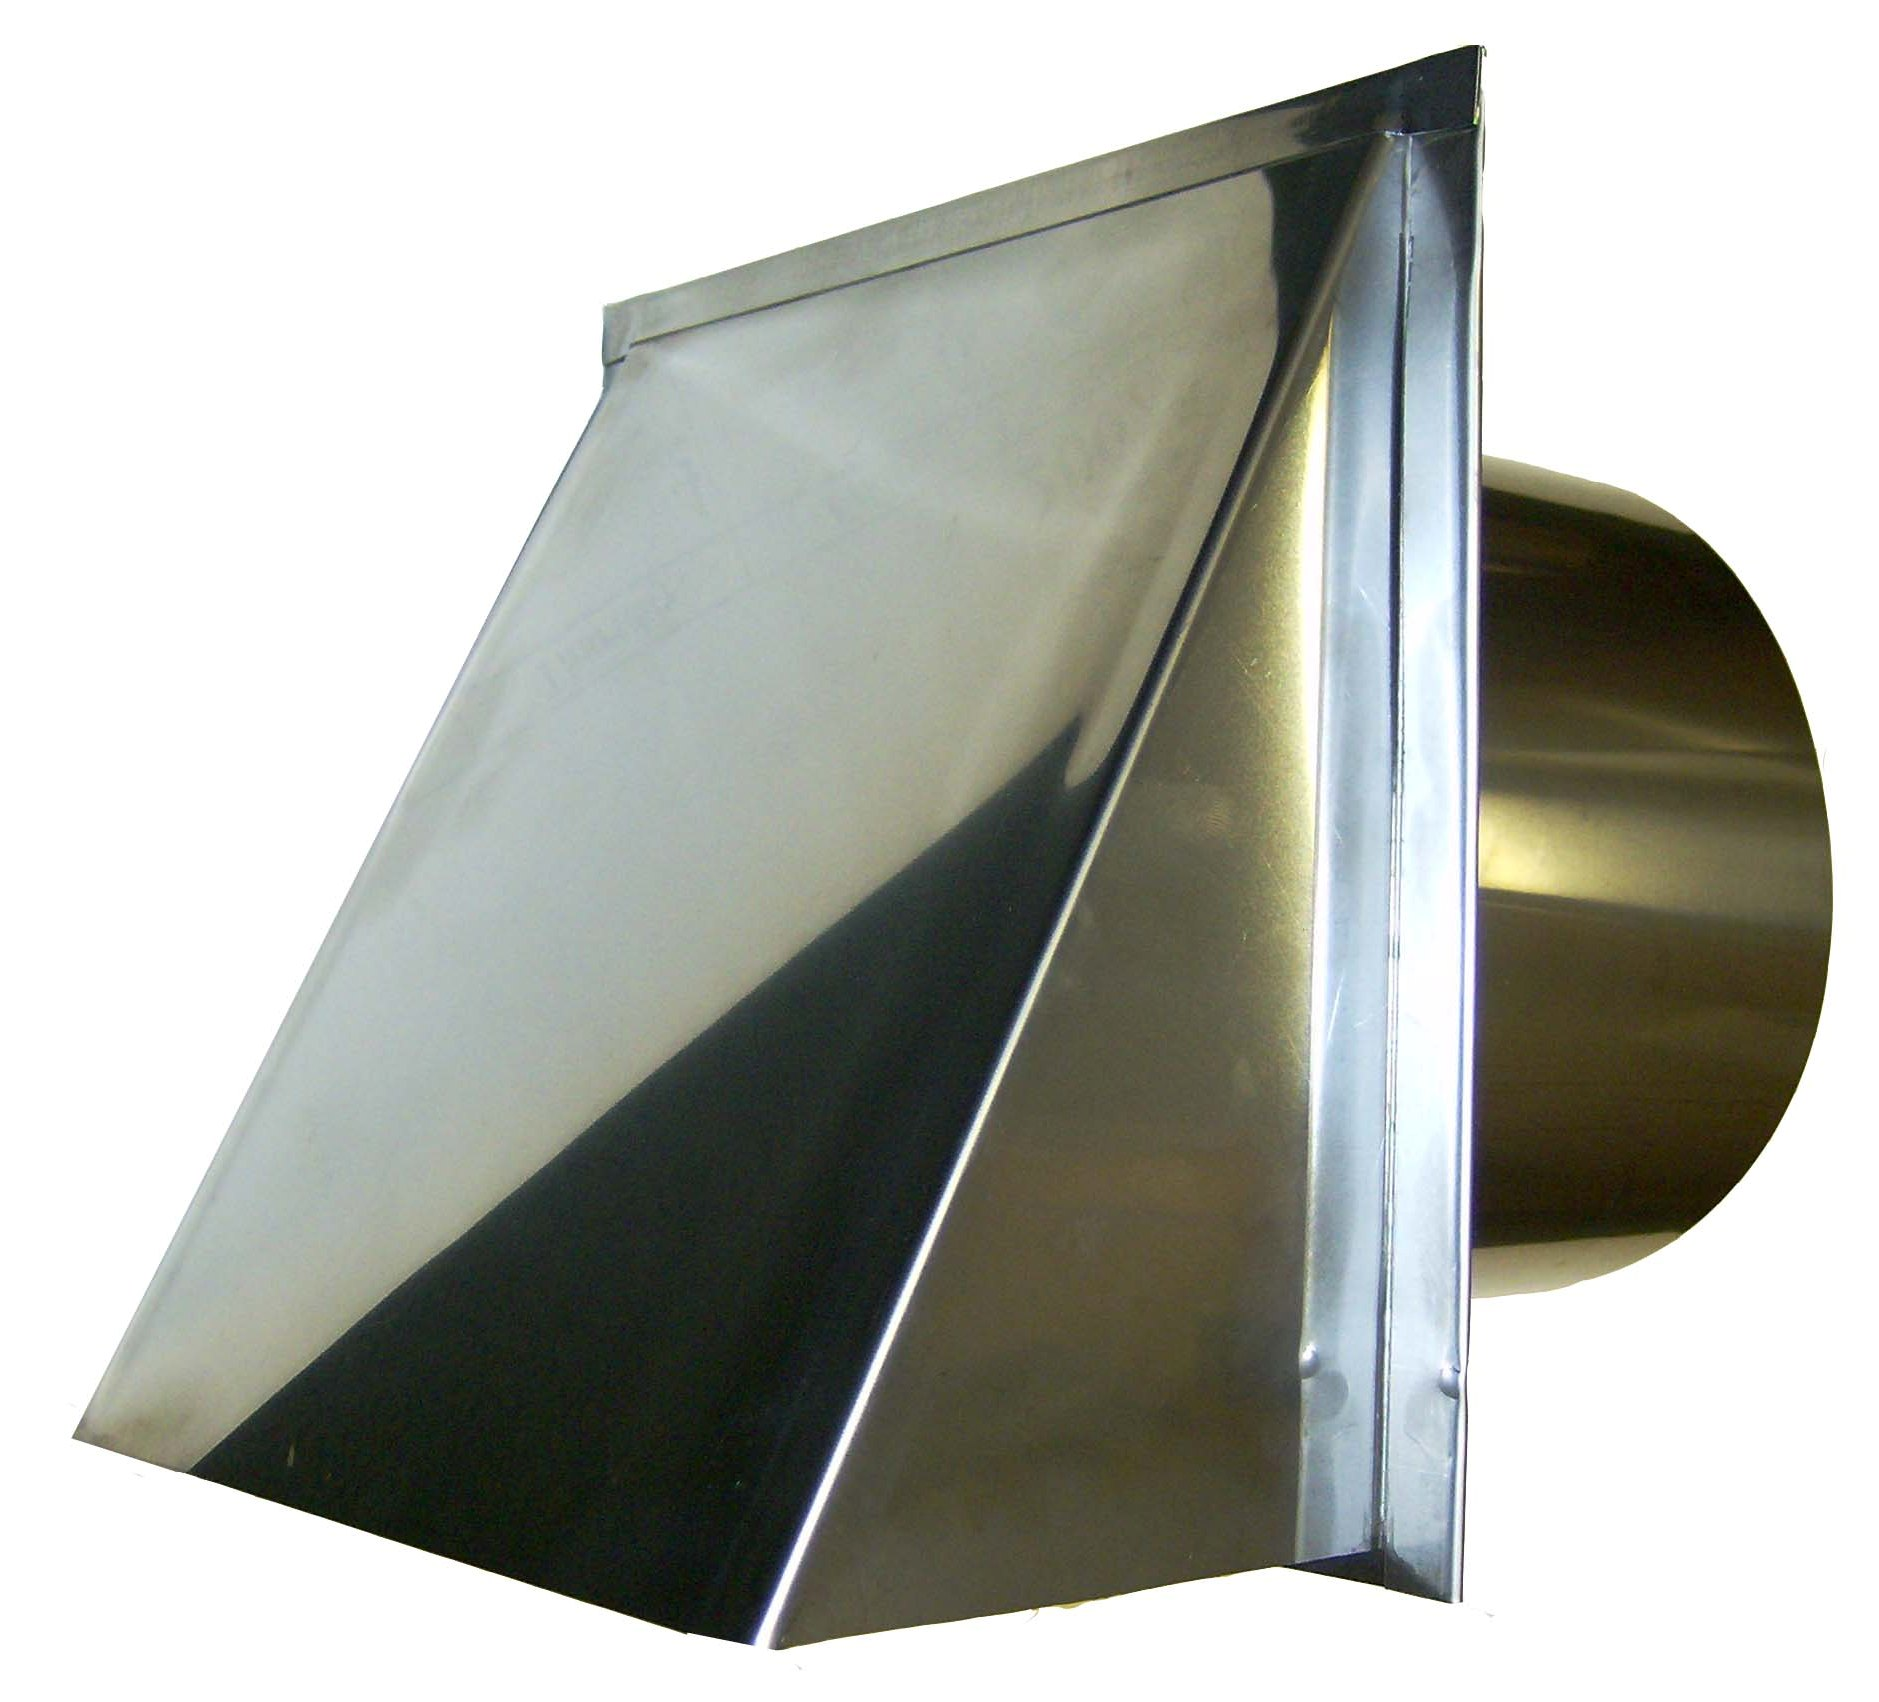 range hood wall vent 8 inch stainess range hood wall vent range exhaust wall vents and roof from luxury metals